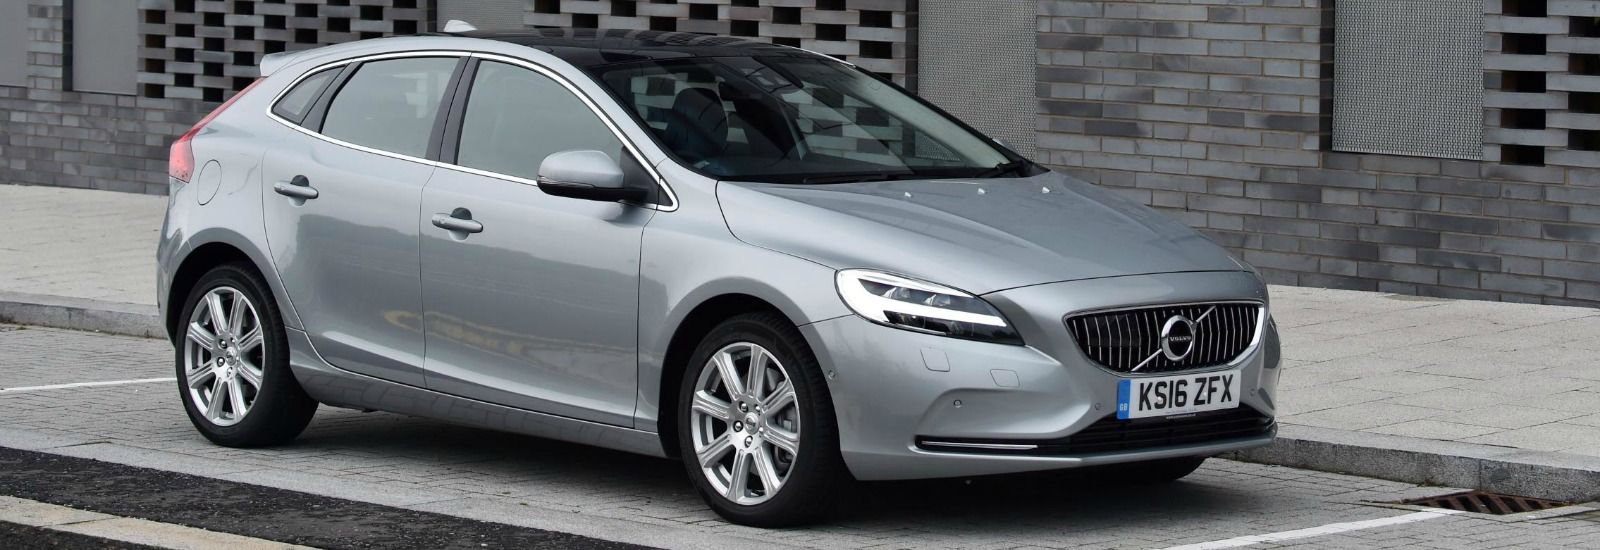 volvo v40 sizes and dimensions guide carwow. Black Bedroom Furniture Sets. Home Design Ideas